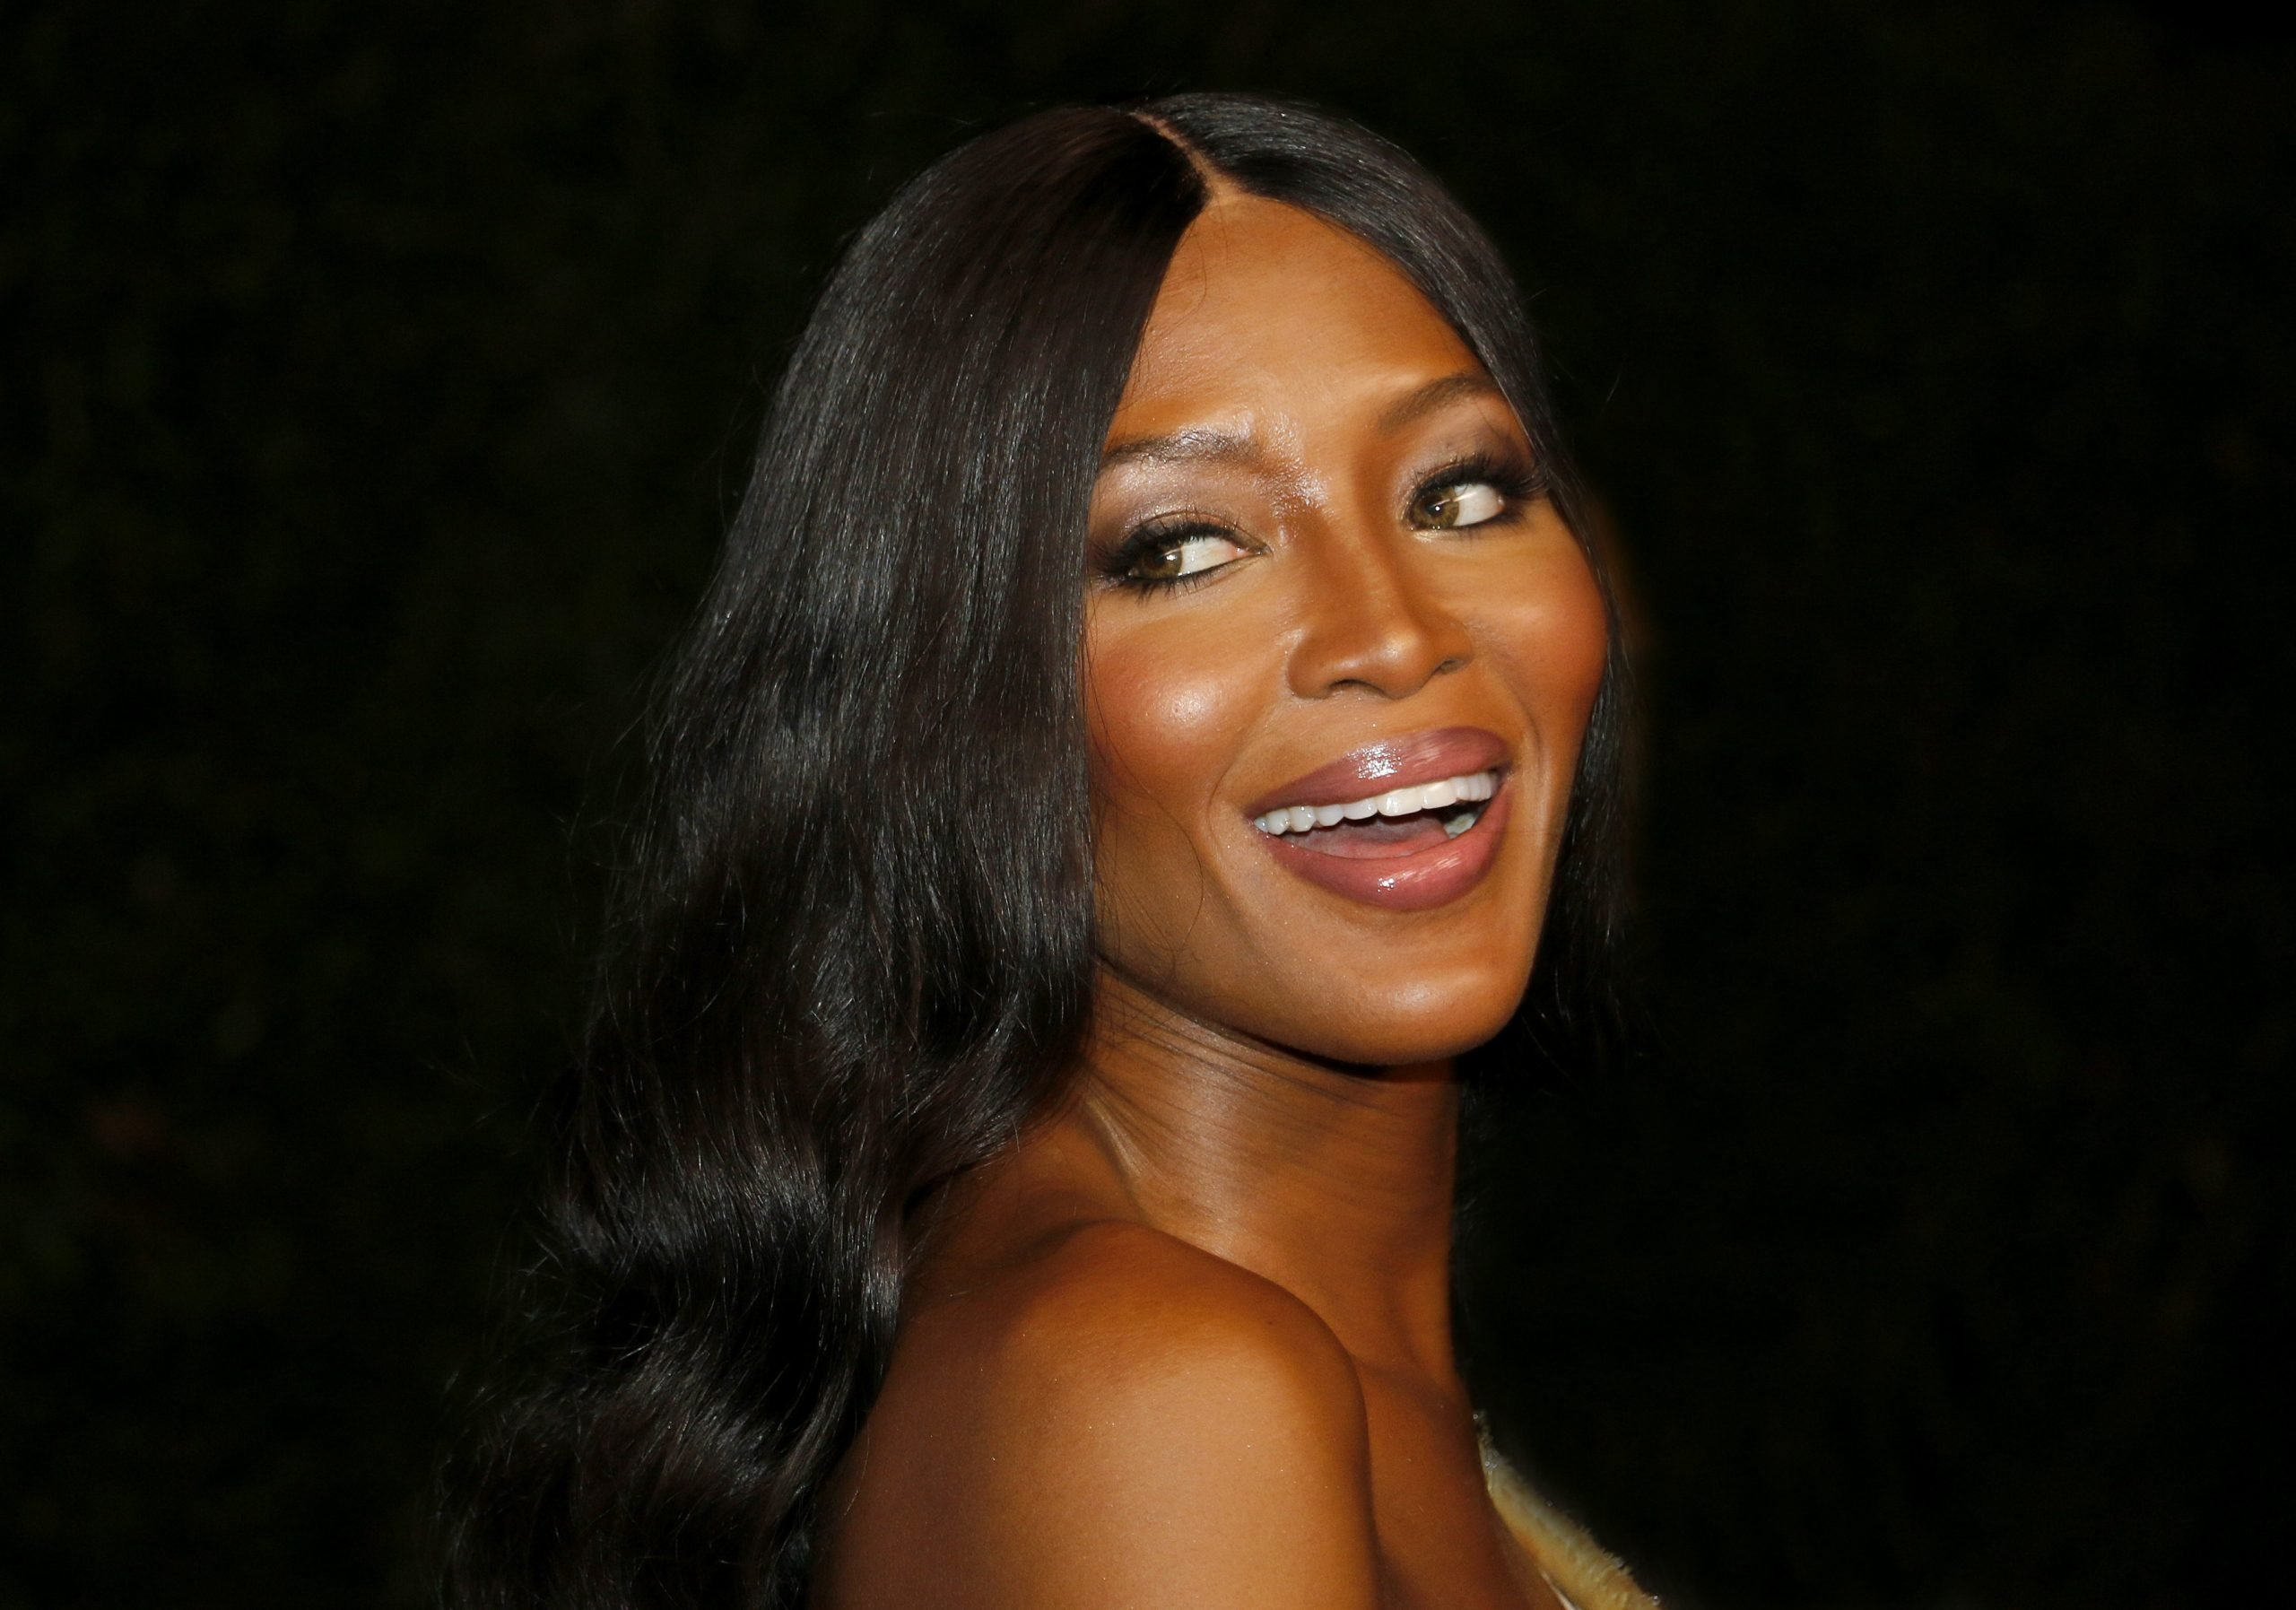 Naomi Campbell smiles at a red carpet event. She has long black hair that sits behind her shoulders. Her body faces away from the camera. Her eyes look past the camera. She is glowing.